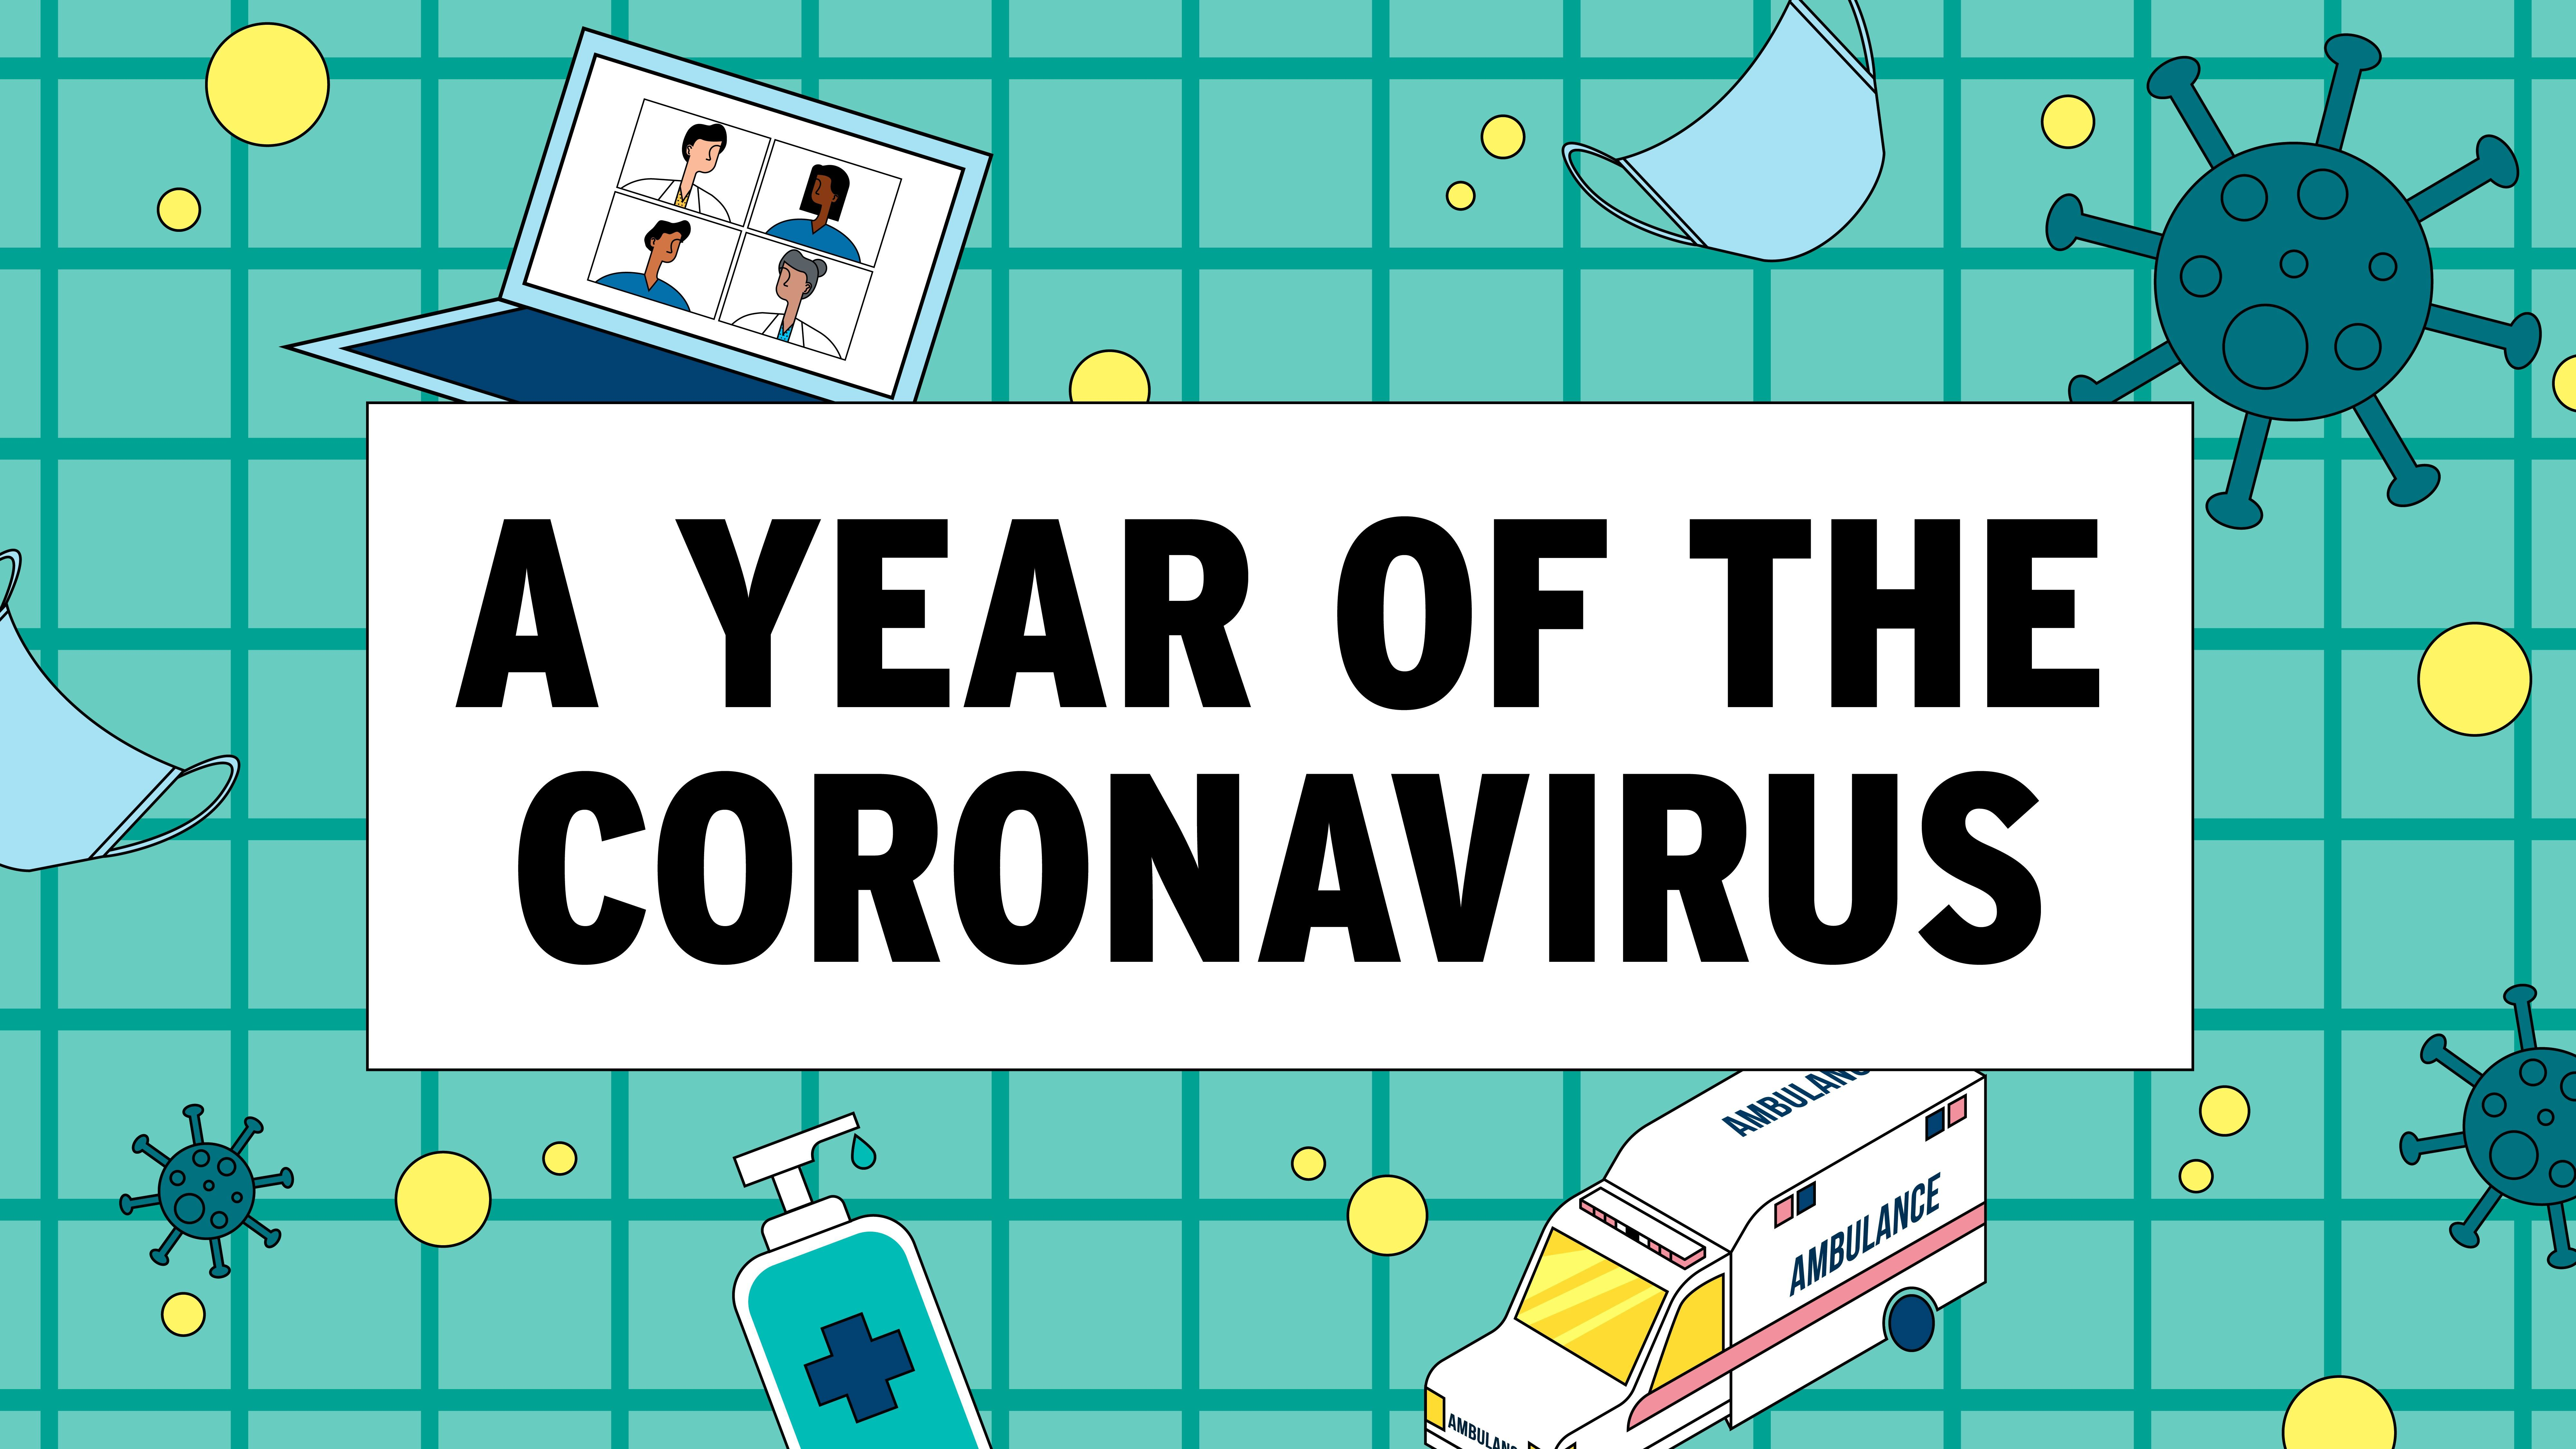 A year of the coronavirus: From a hint of something in China to full-blown global pandemic